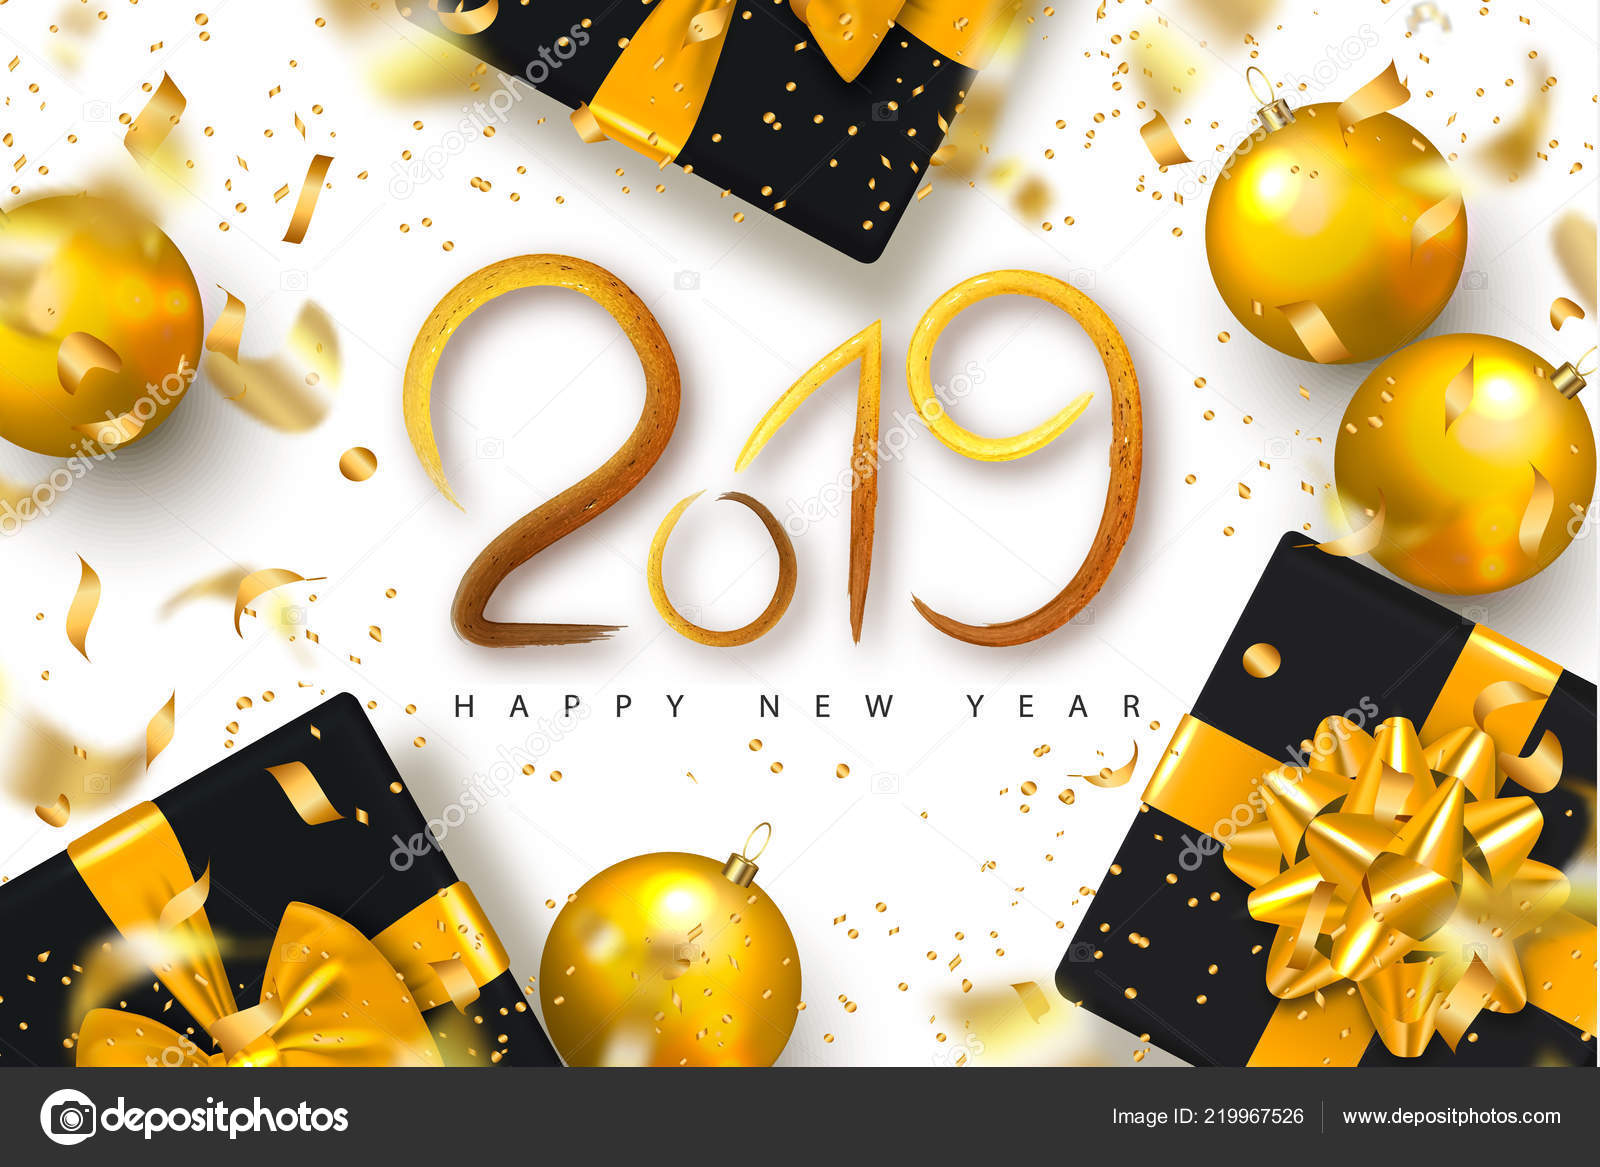 2019 happy new year background for holiday greeting card invitation party flyer poster banner beautiful golden shiny tree ballsgift boxes and